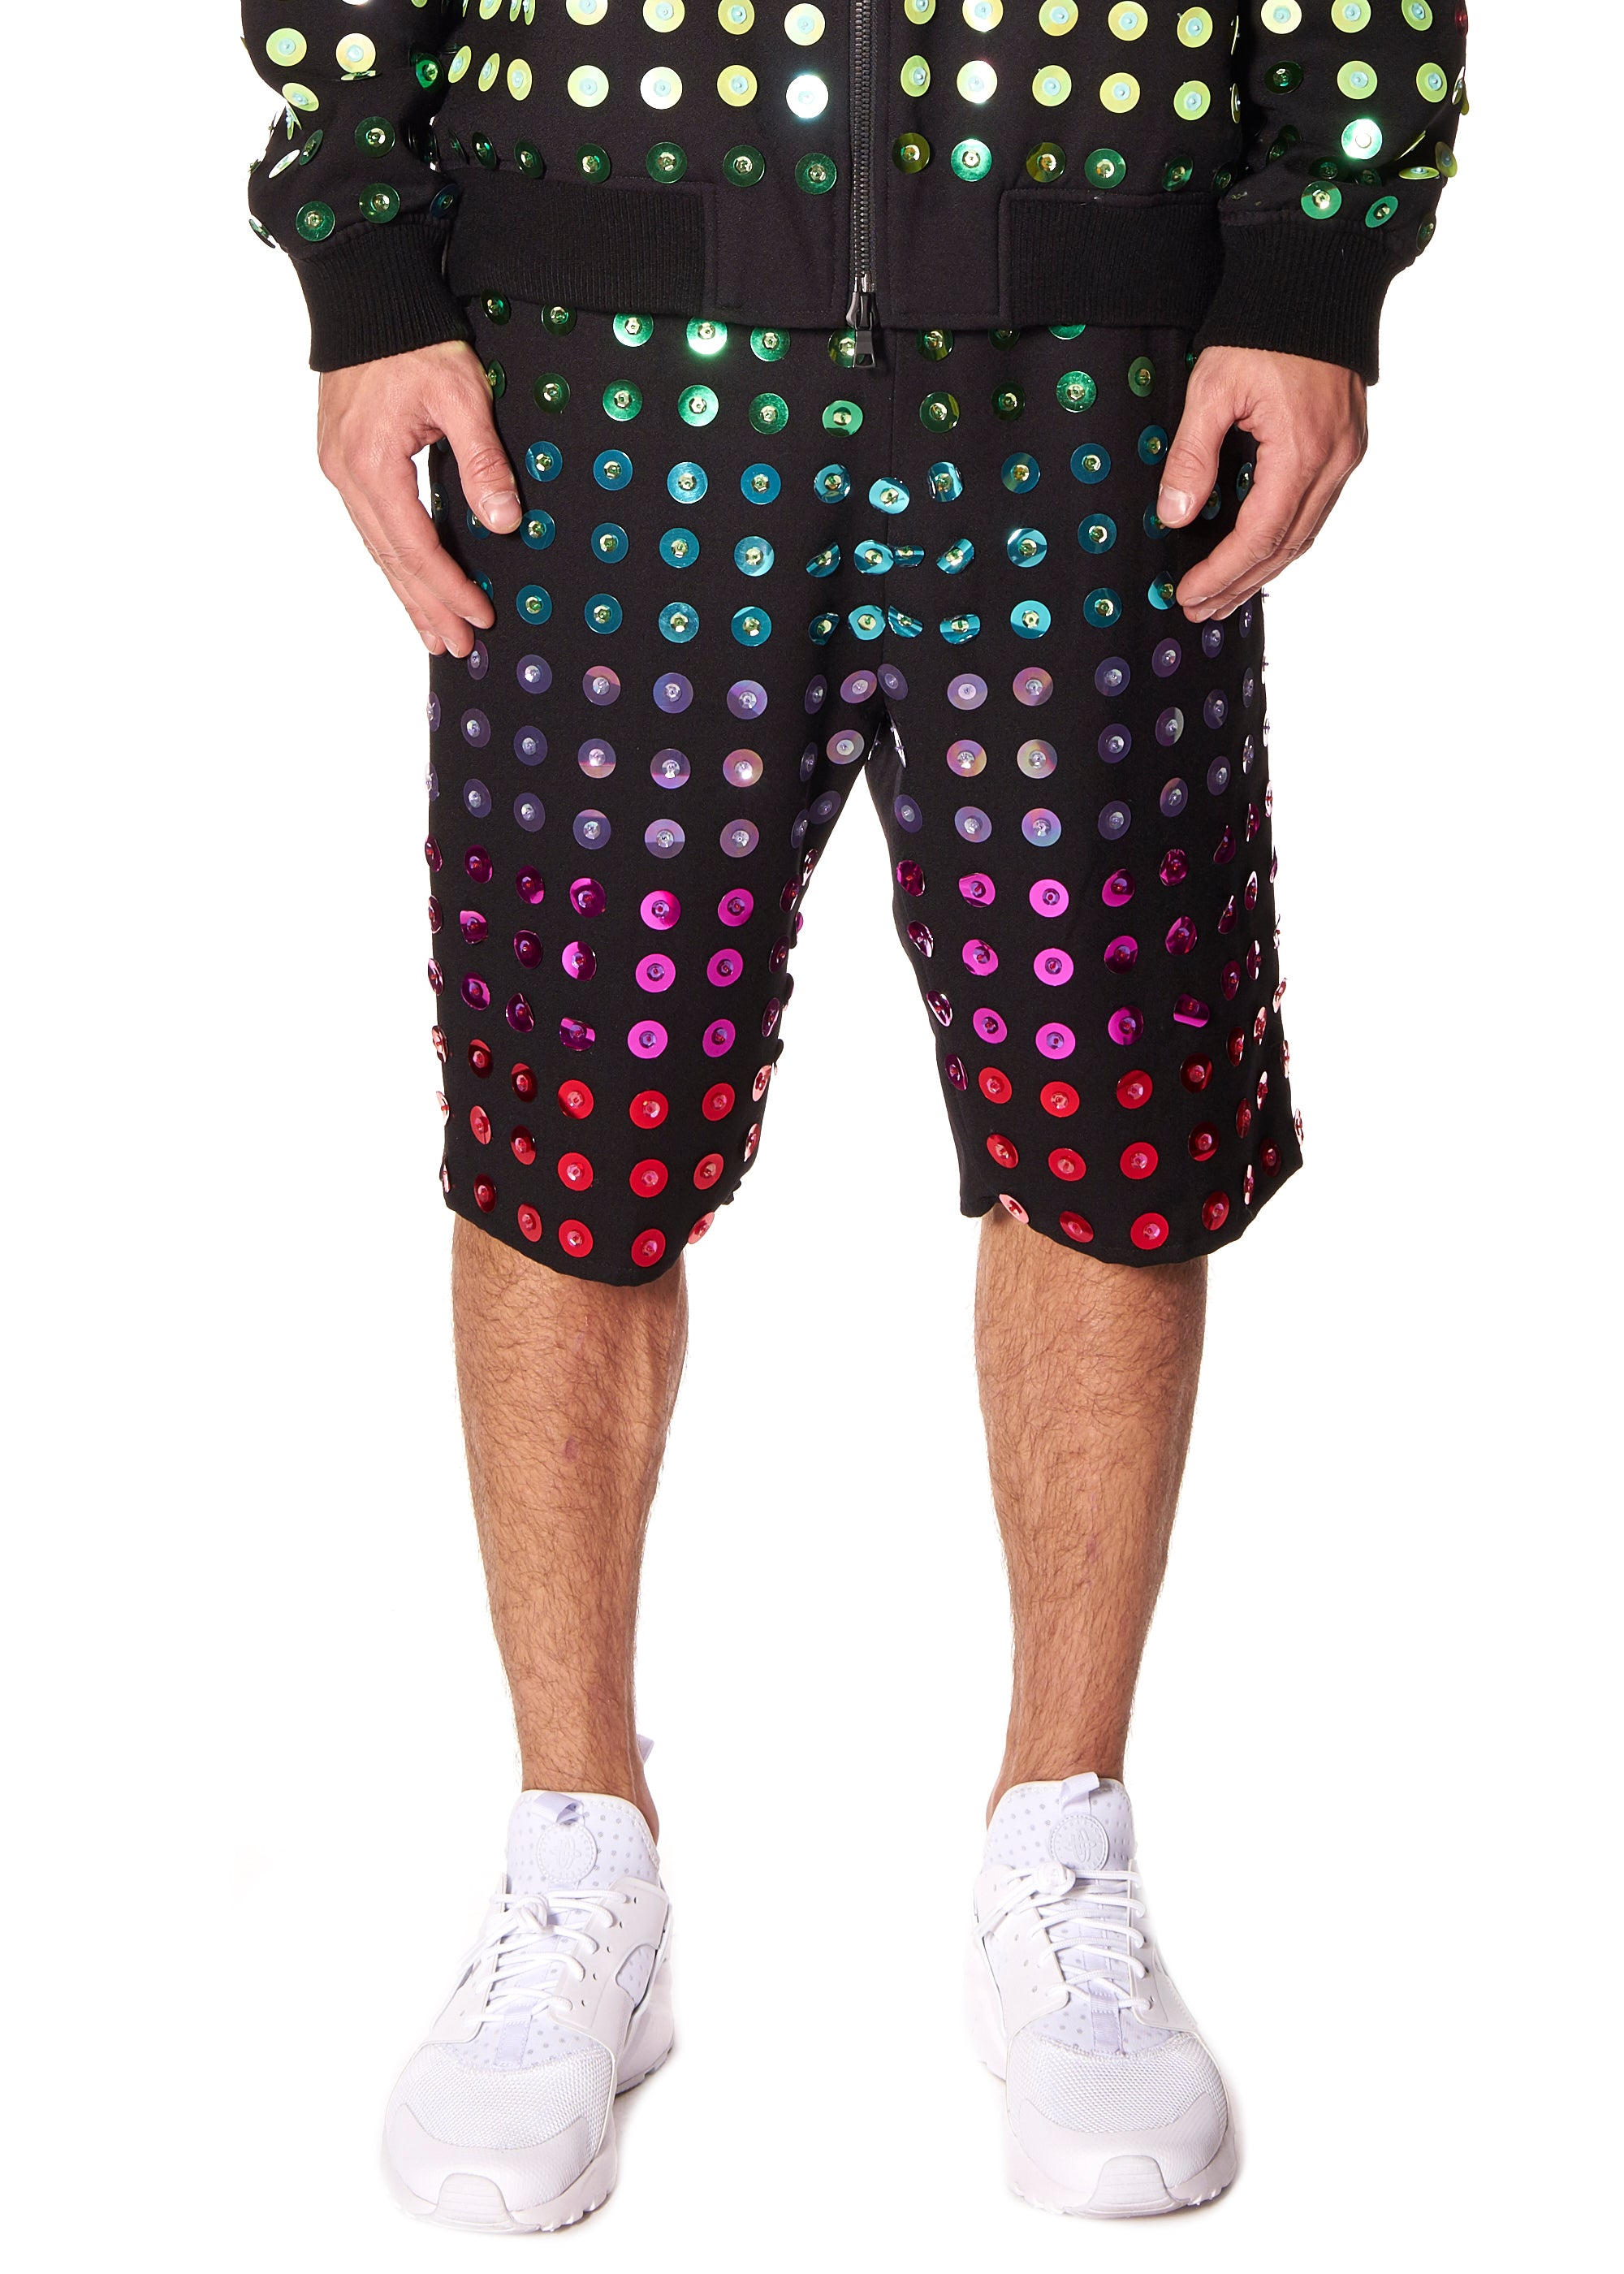 RAINBOW PAILETTE SHORT - Men's Bottom's - Libertine